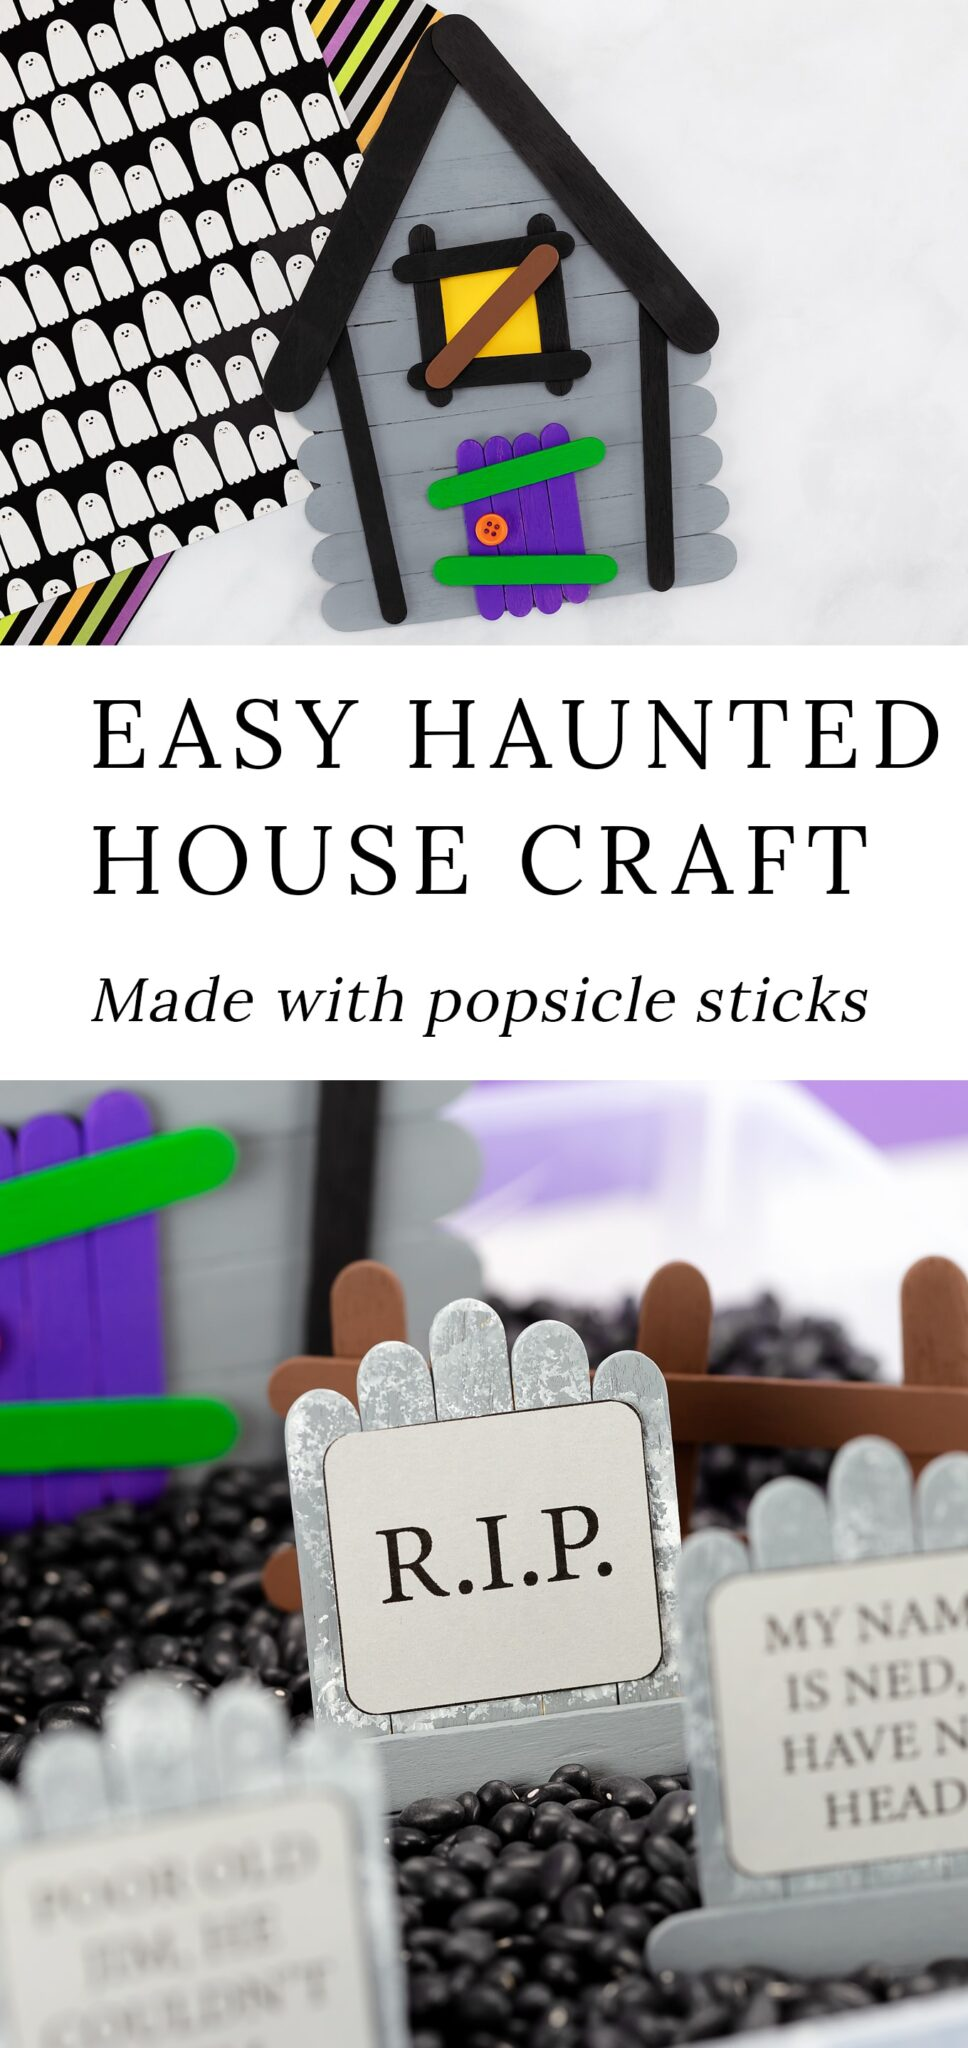 This post includes 3 innovative popsicle stick craft templates that will guide you through the process of making a spookypopsicle stick haunted housecomplete with popsicle stick tombstones and fences. They are perfect for imaginative play! #popsiclestick #hauntedhouse #halloween #kids via @firefliesandmudpies